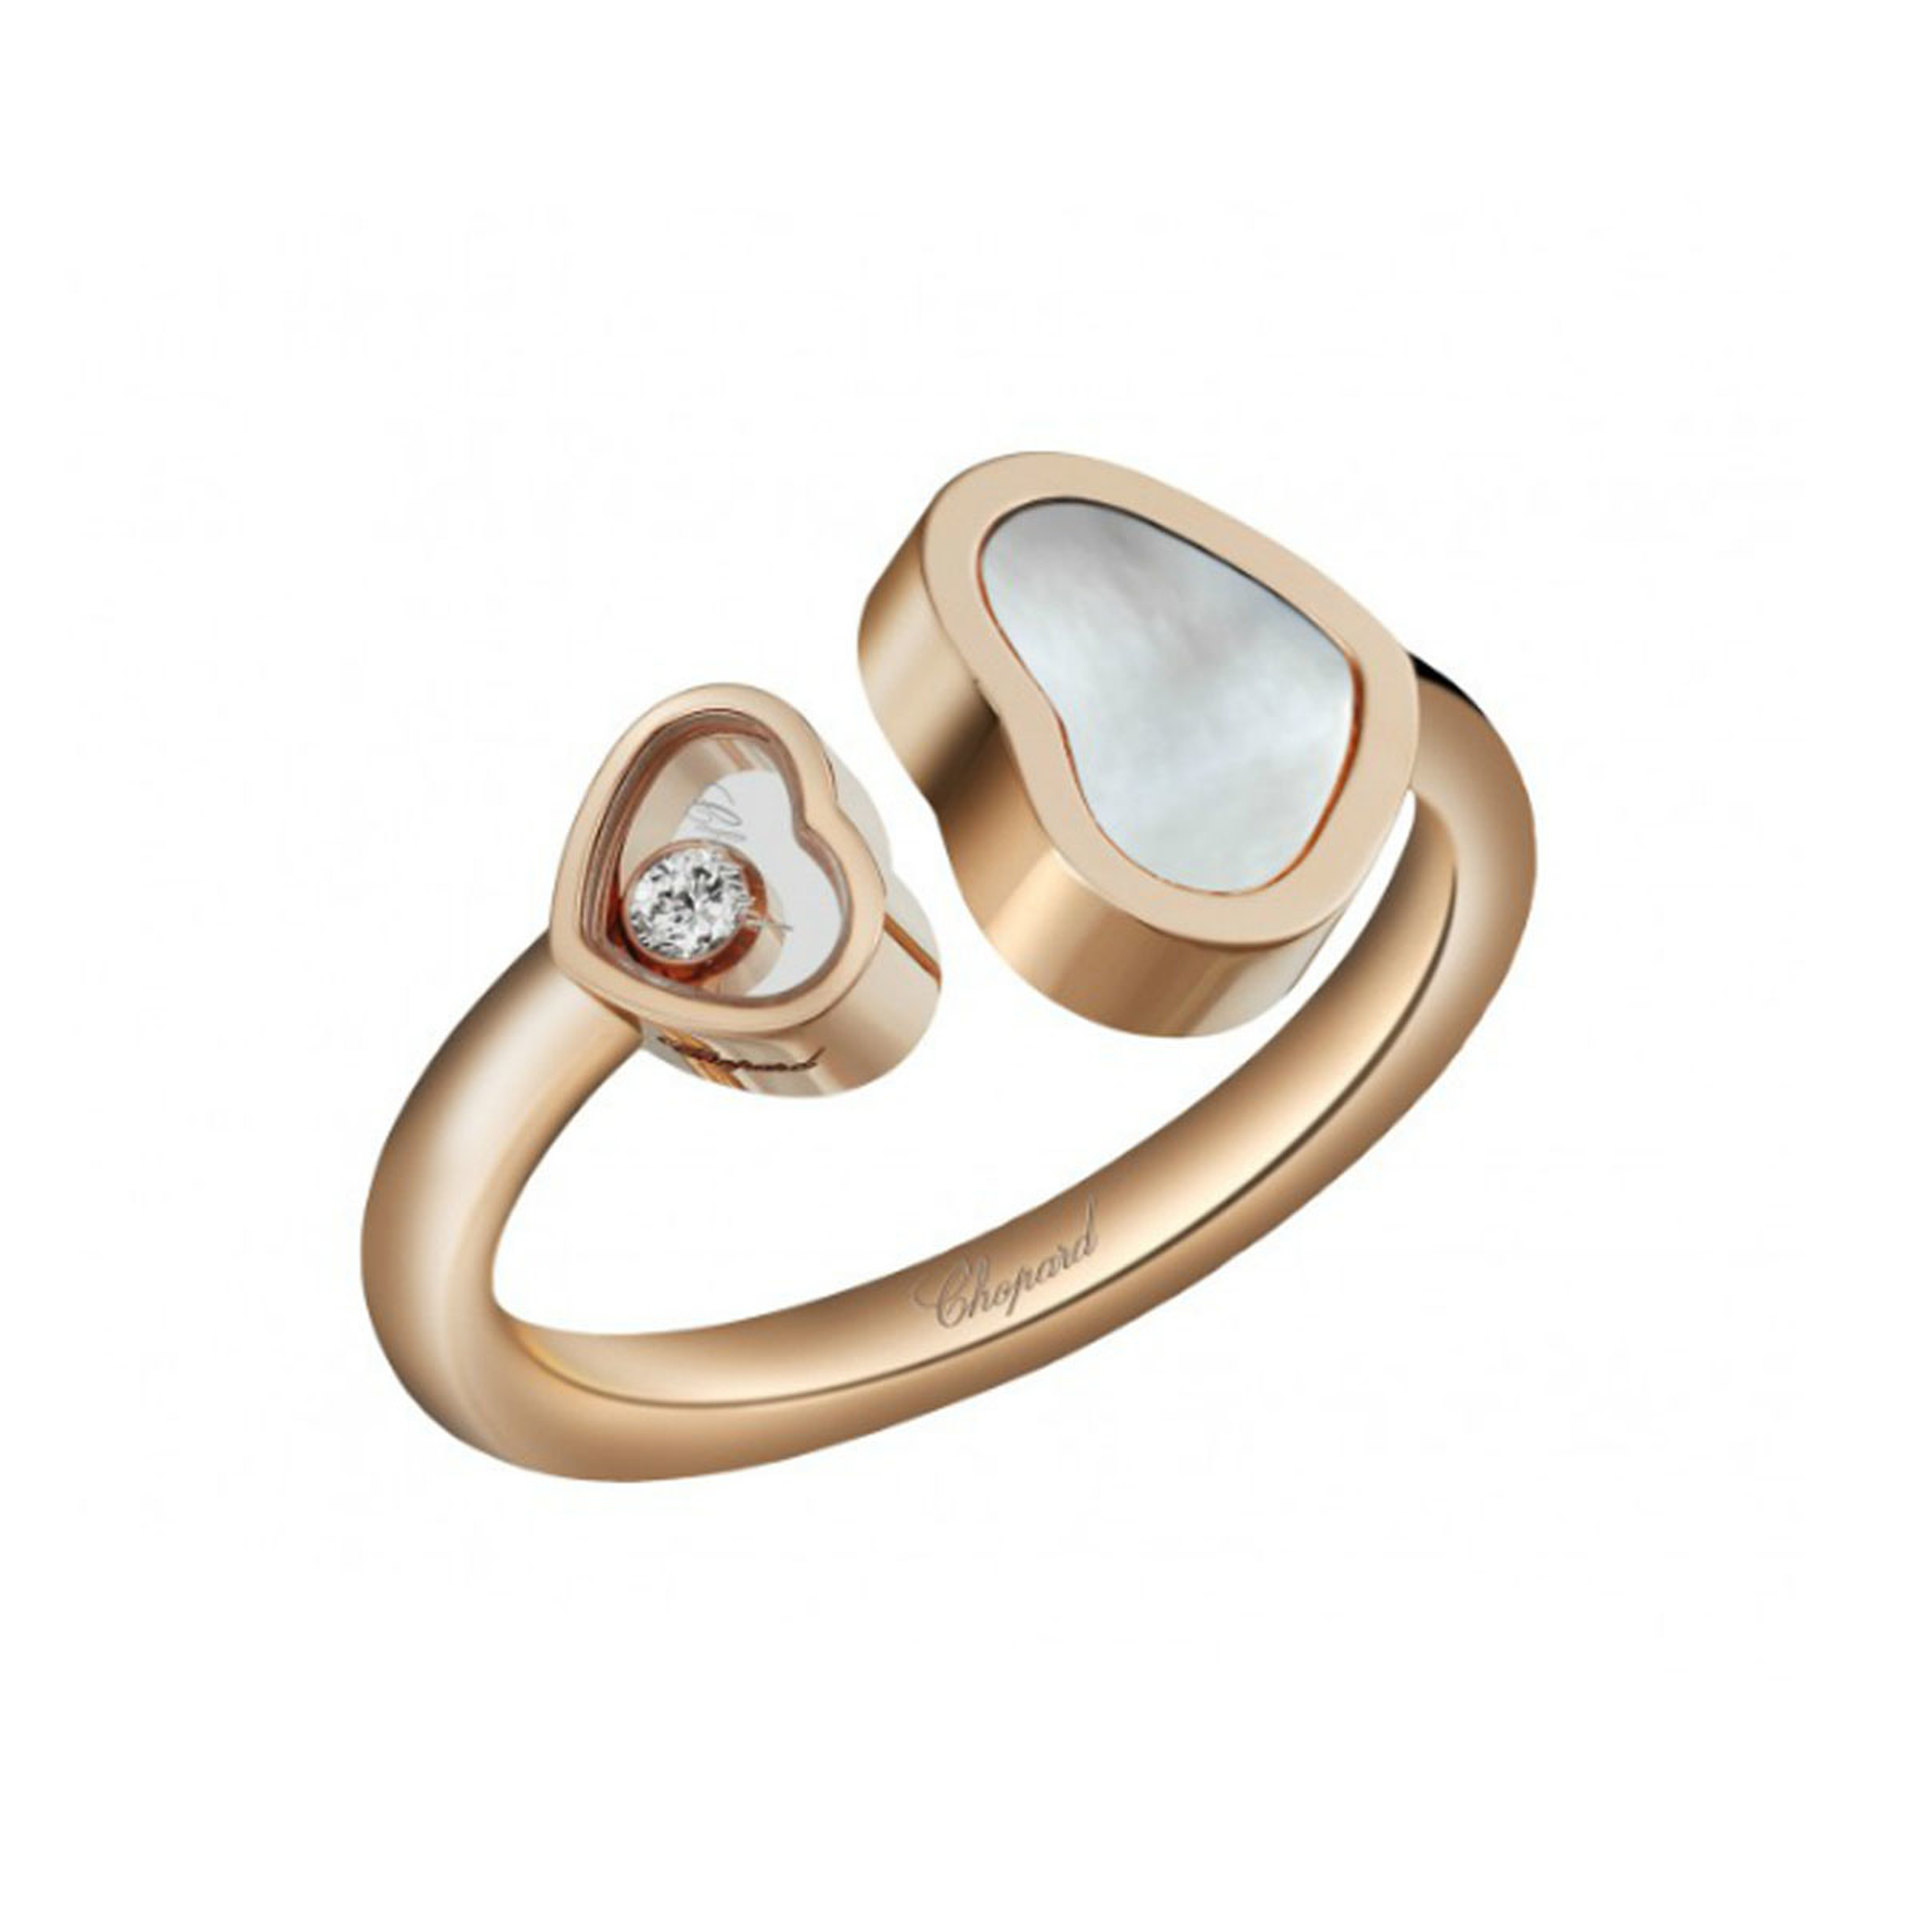 Chopard 18ct Rose Gold Happy Hearts Ring